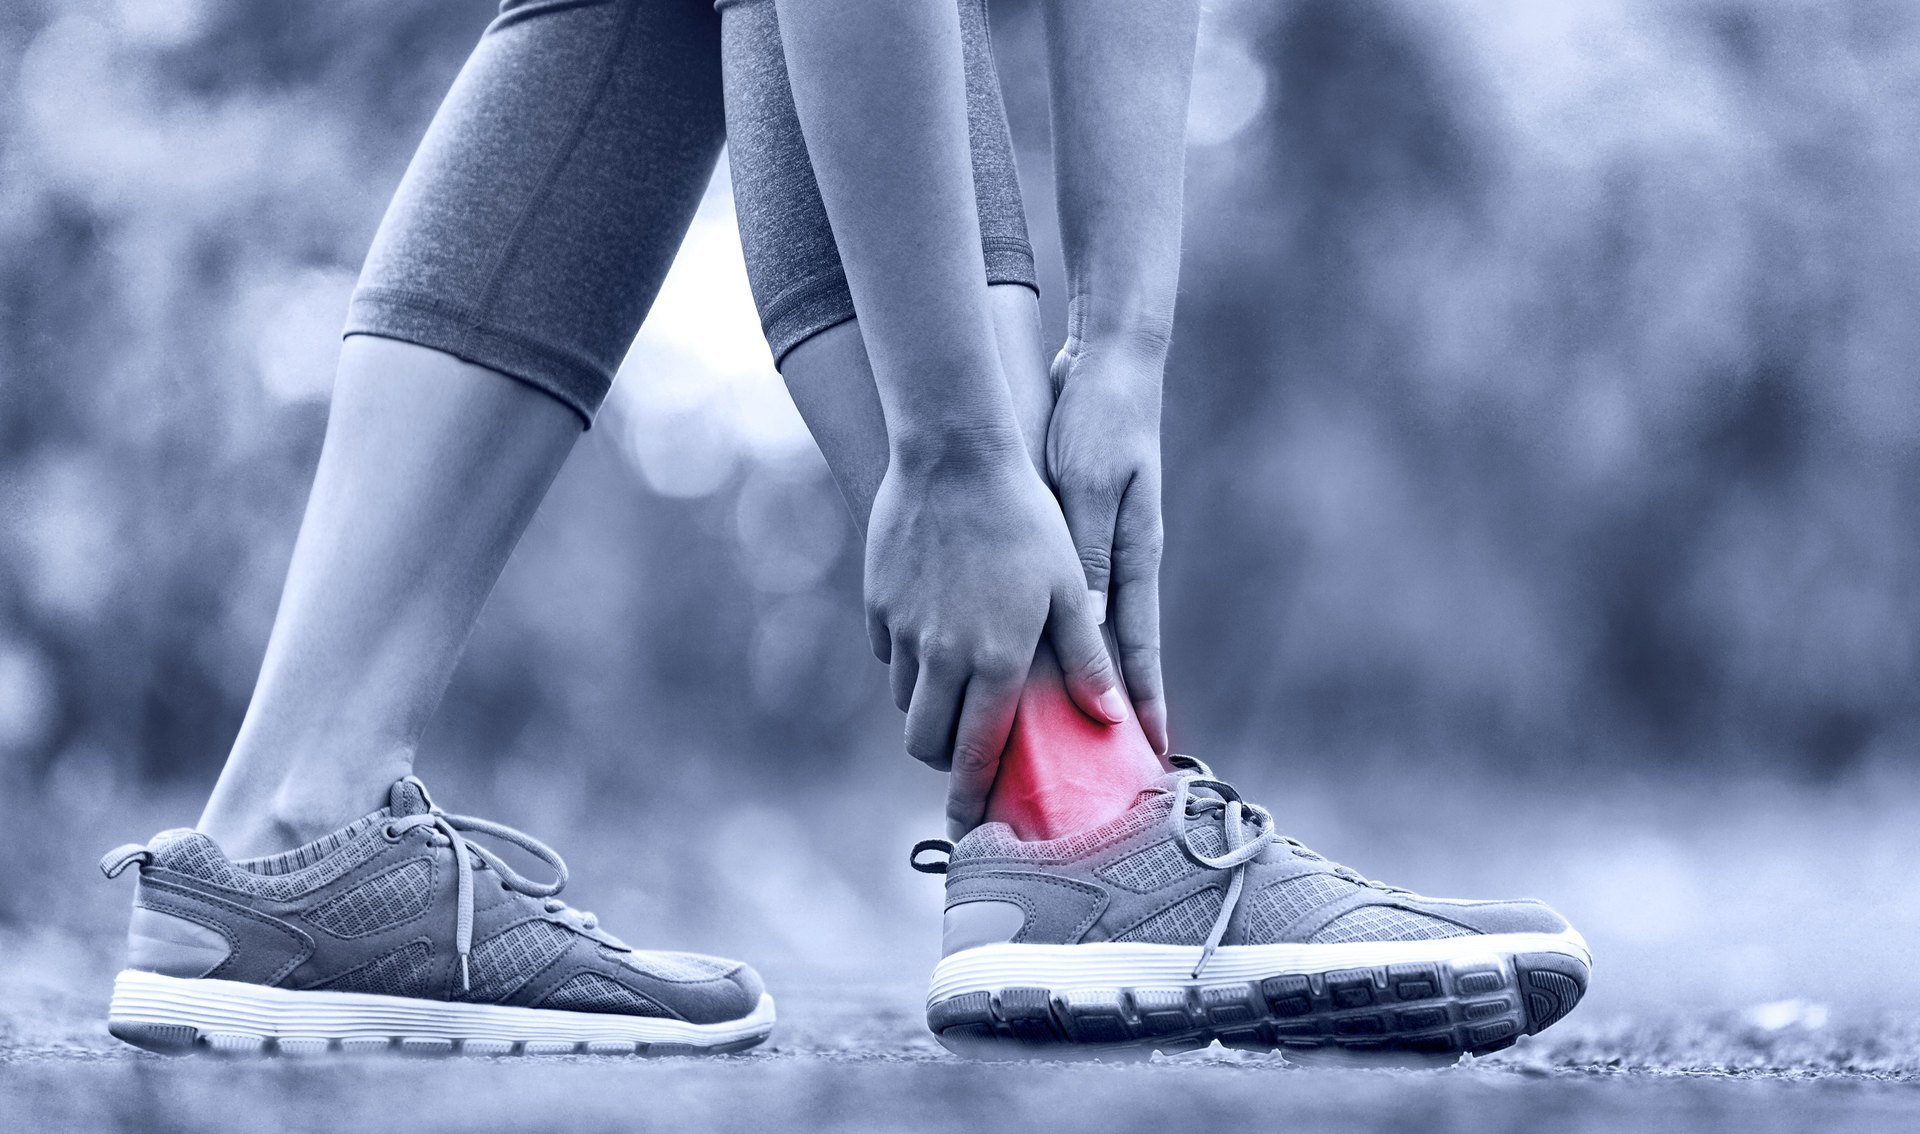 A lady in leggings and trainers with her hands on her ankle, where the painful area is shown in red.